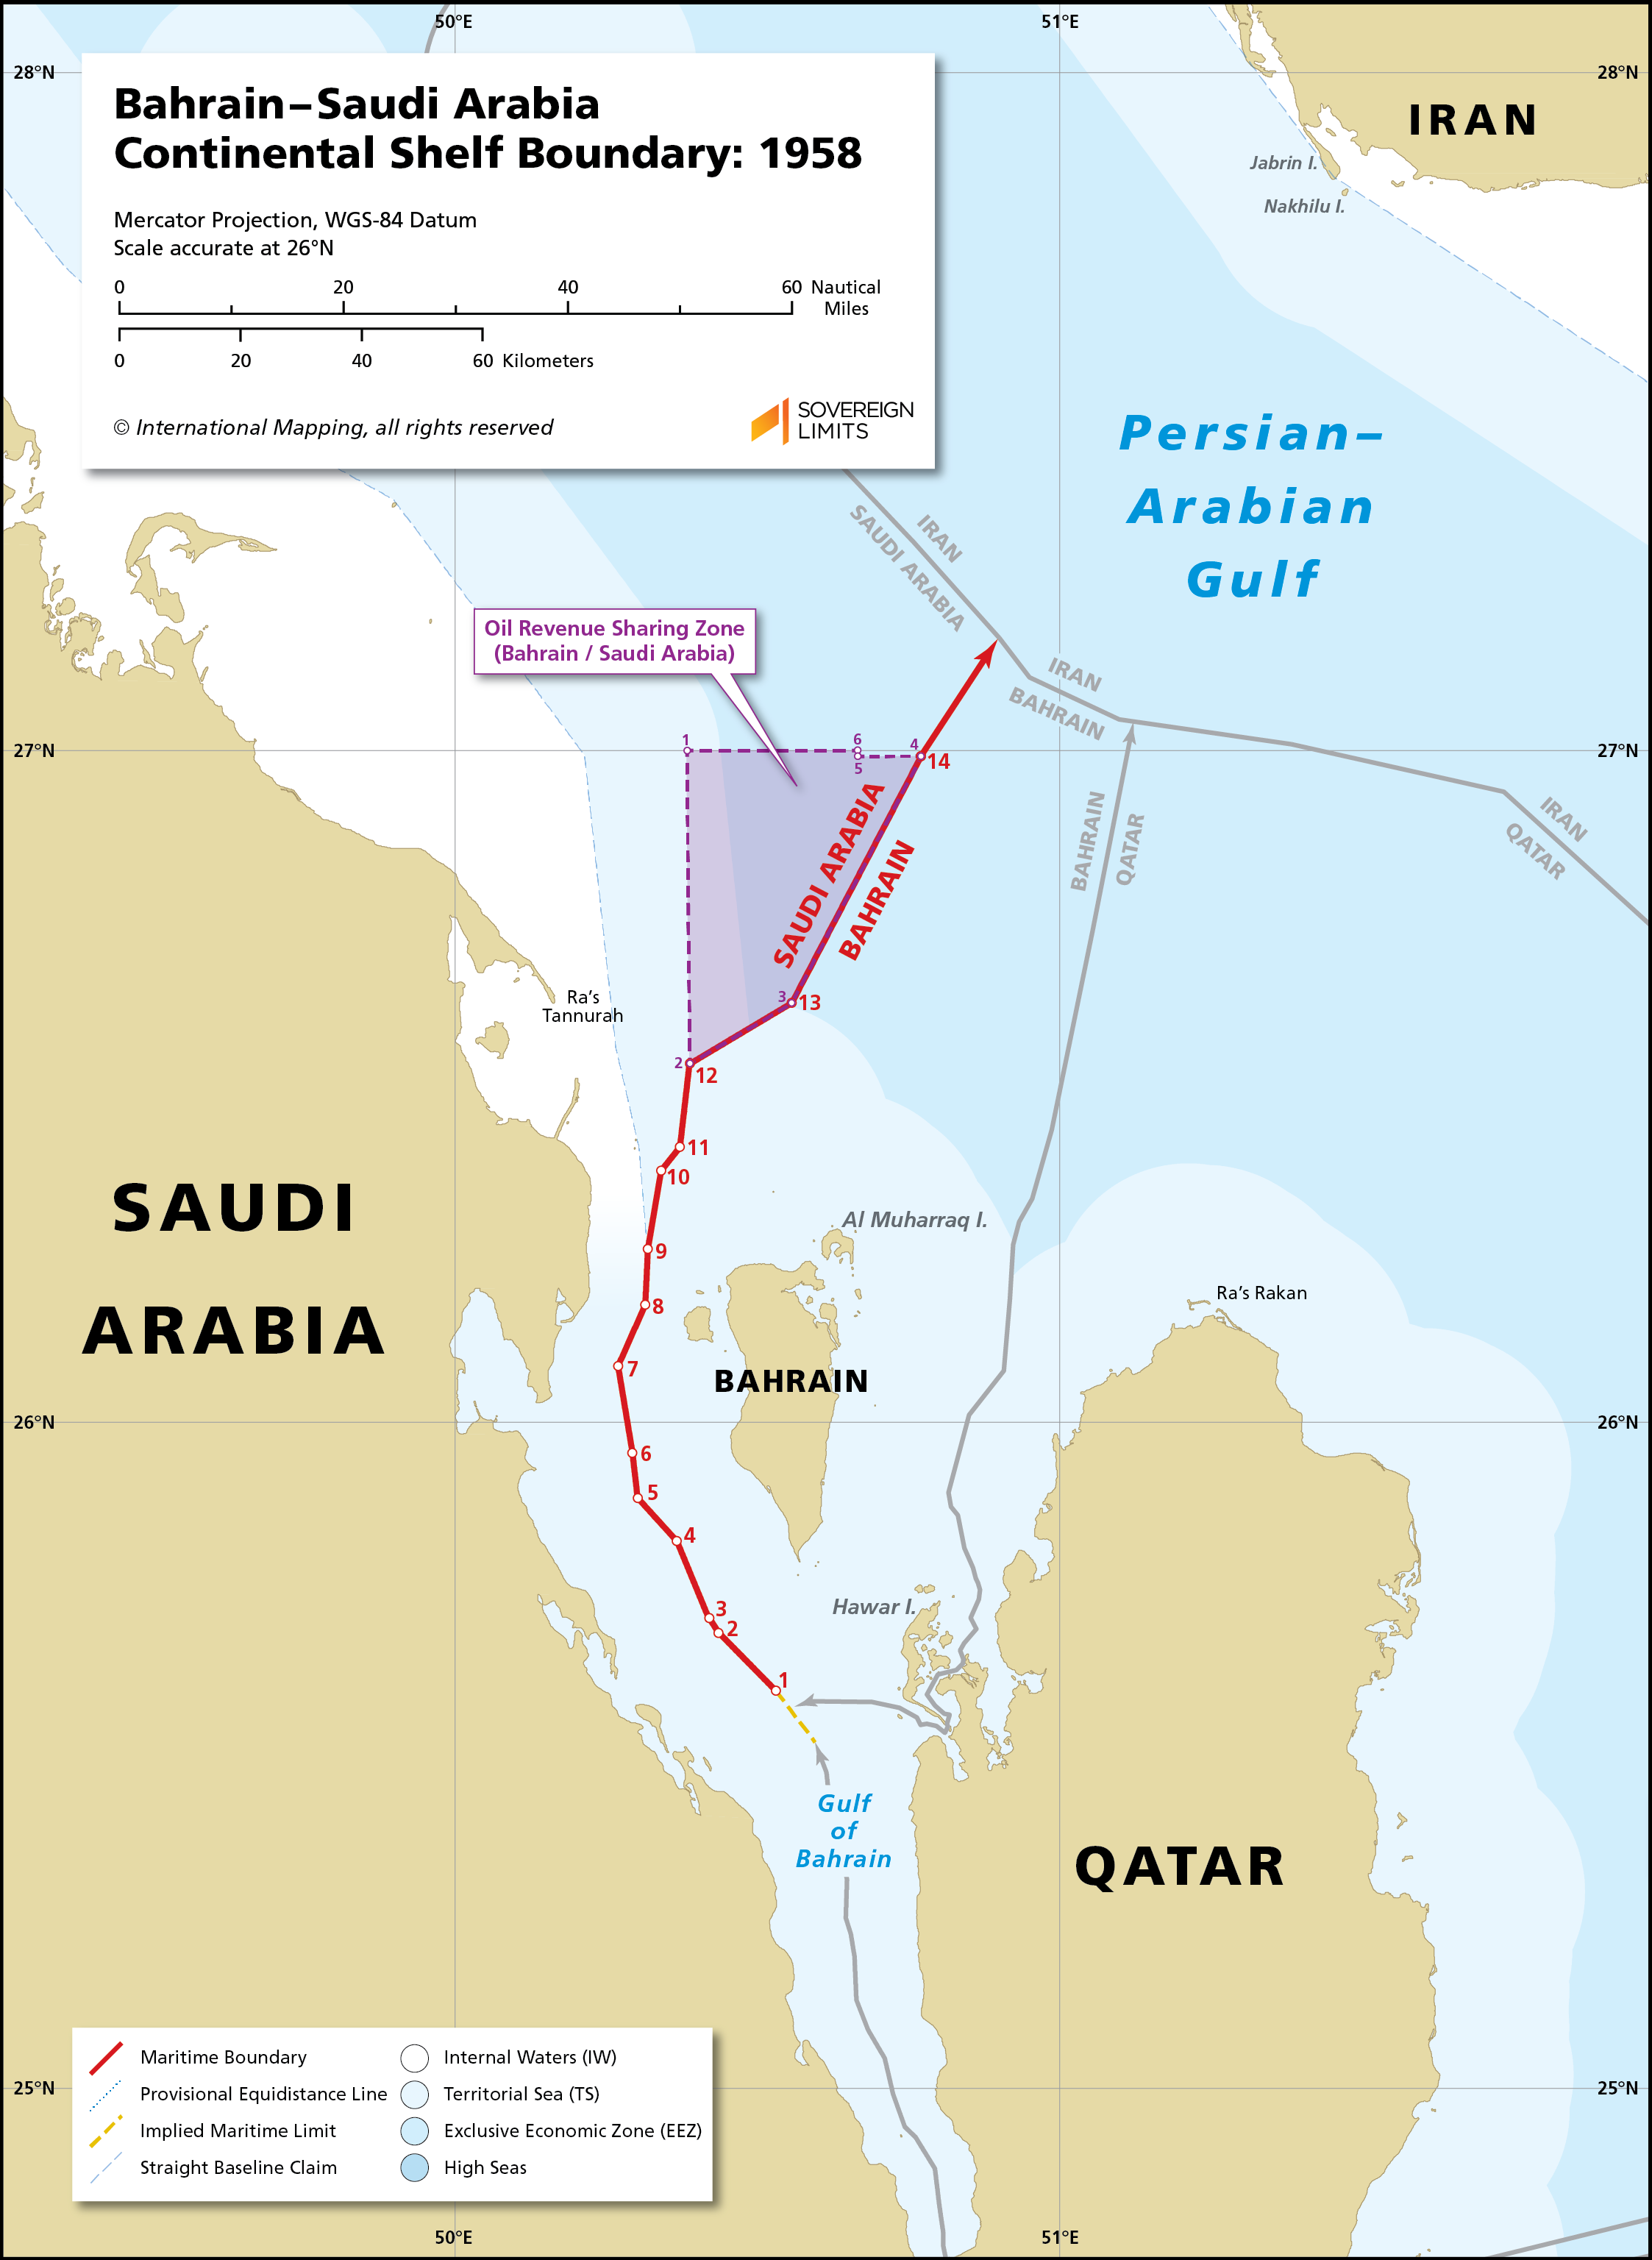 Map showing the maritime boundary between Bahrain and Saudi Arabia